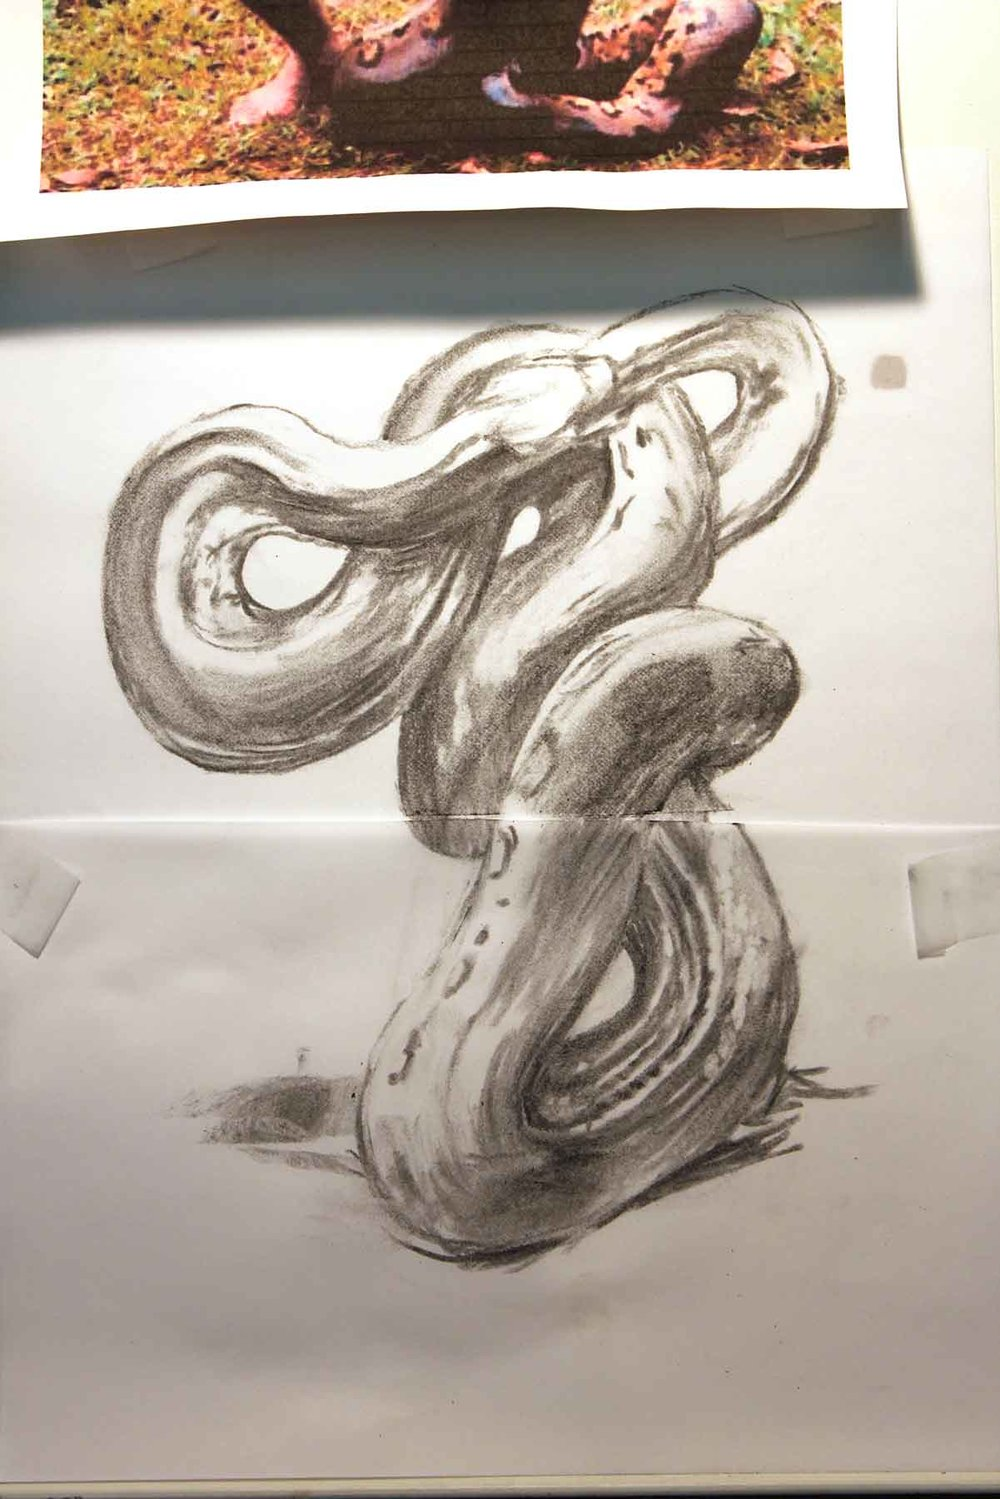 The concept for this next painting involved trying out different coils for the snake's base.